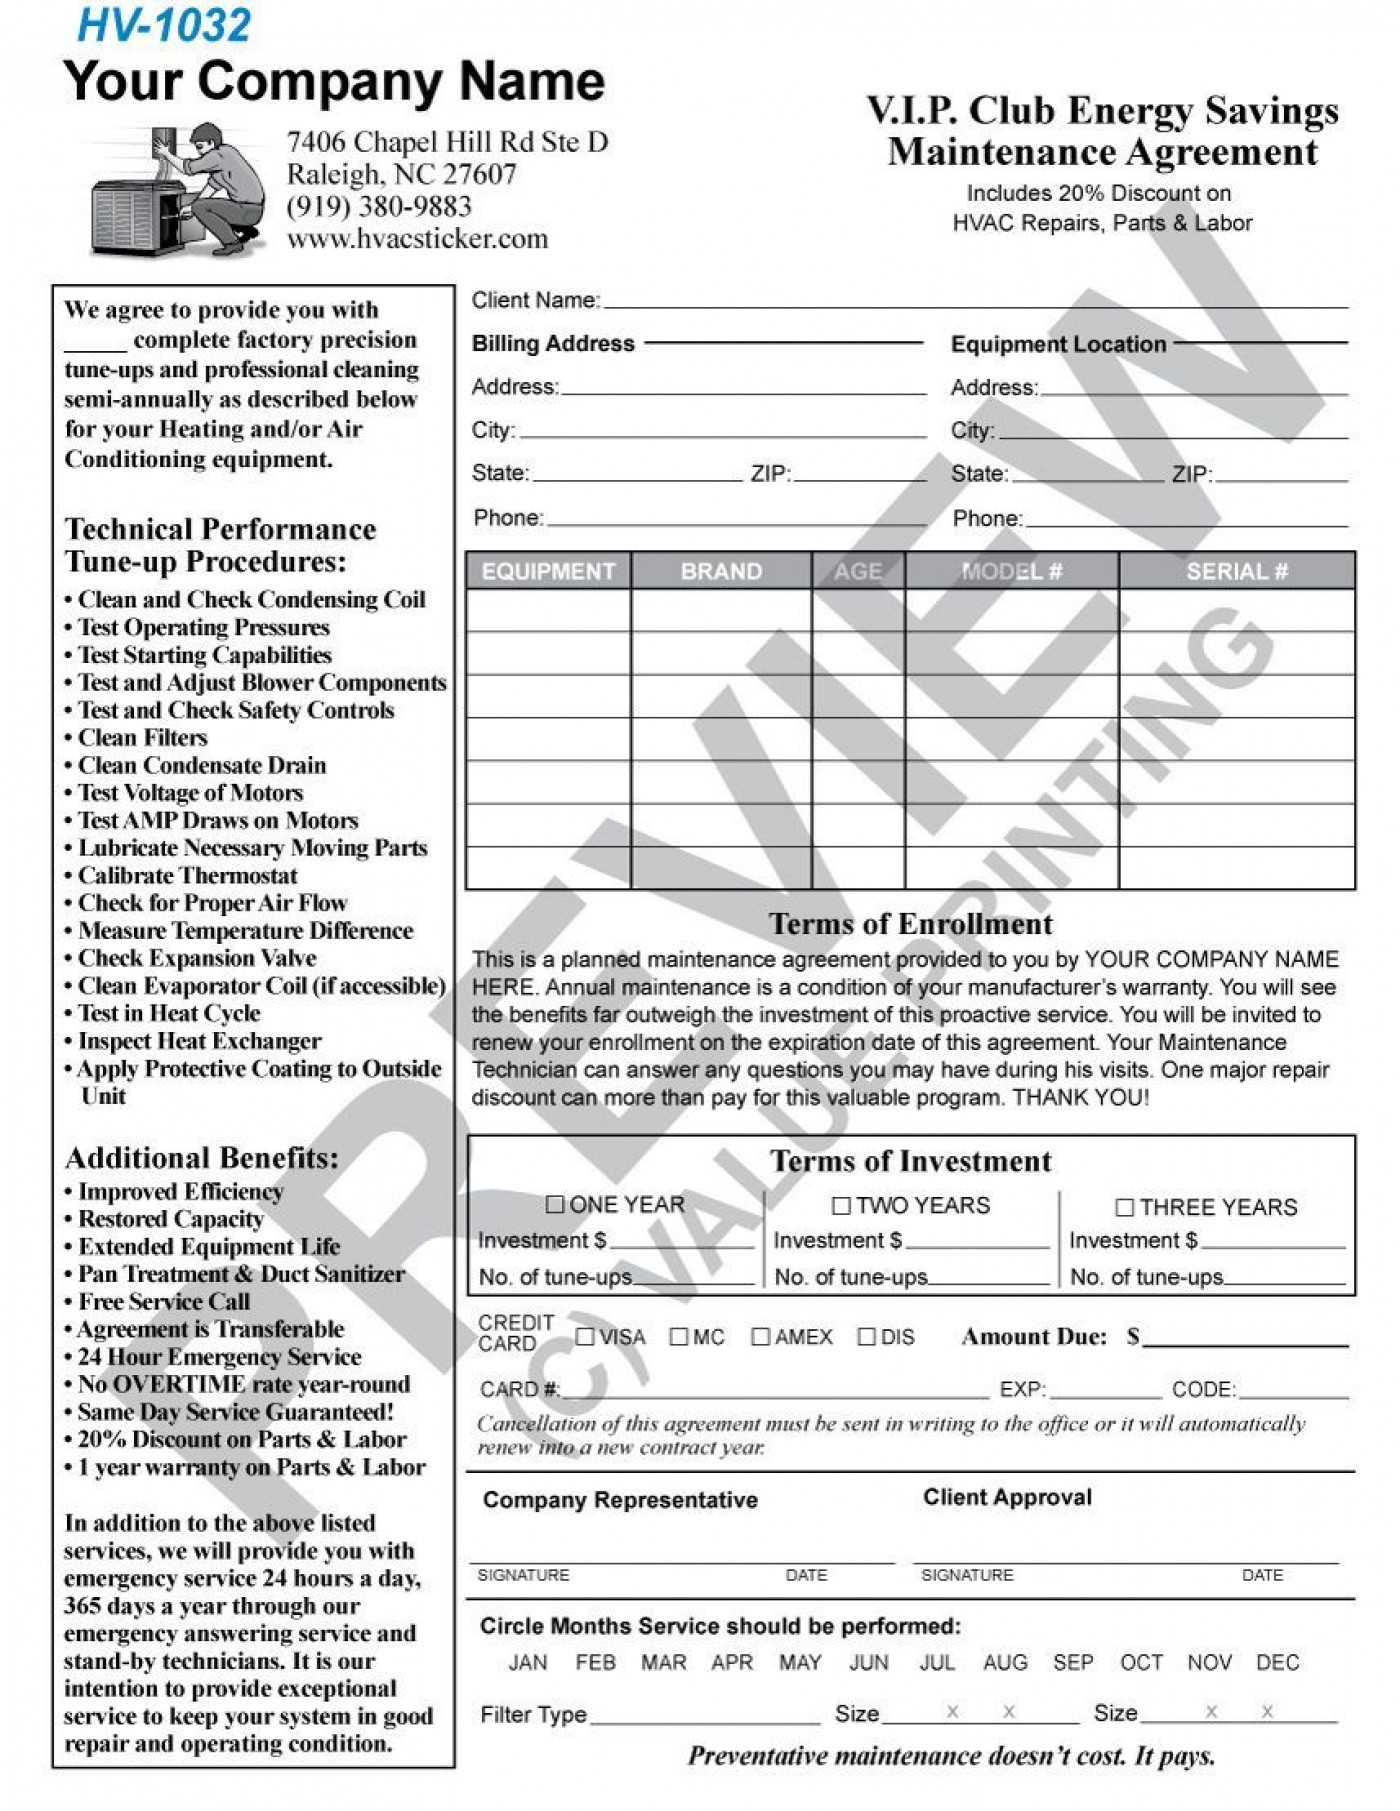 004 Incredible Commercial Hvac Service Agreement Template Picture  Maintenance Contract1400